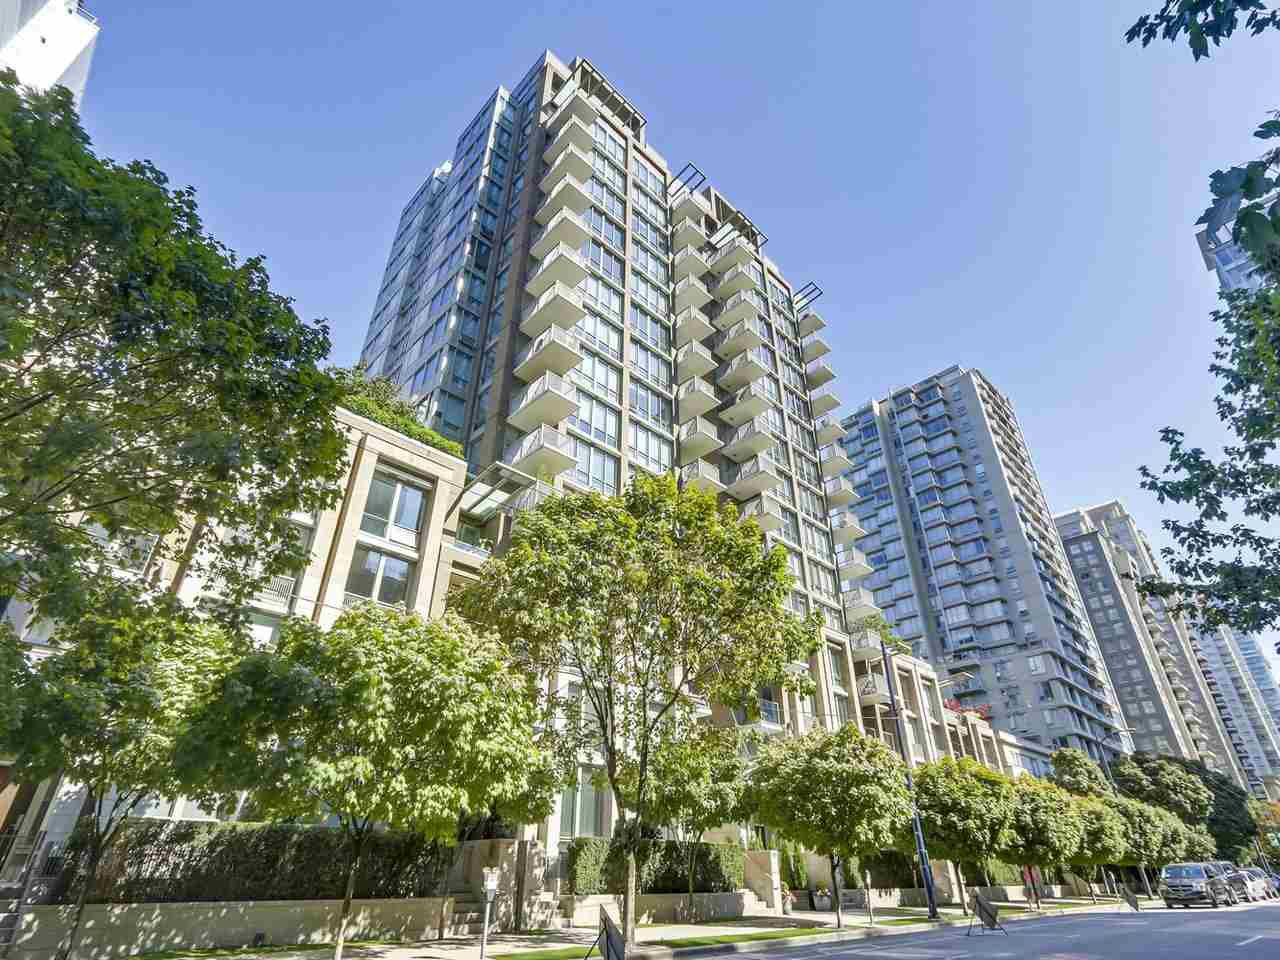 Main Photo: 1706 1055 RICHARDS STREET in Vancouver: Downtown VW Condo for sale (Vancouver West)  : MLS®# R2293878